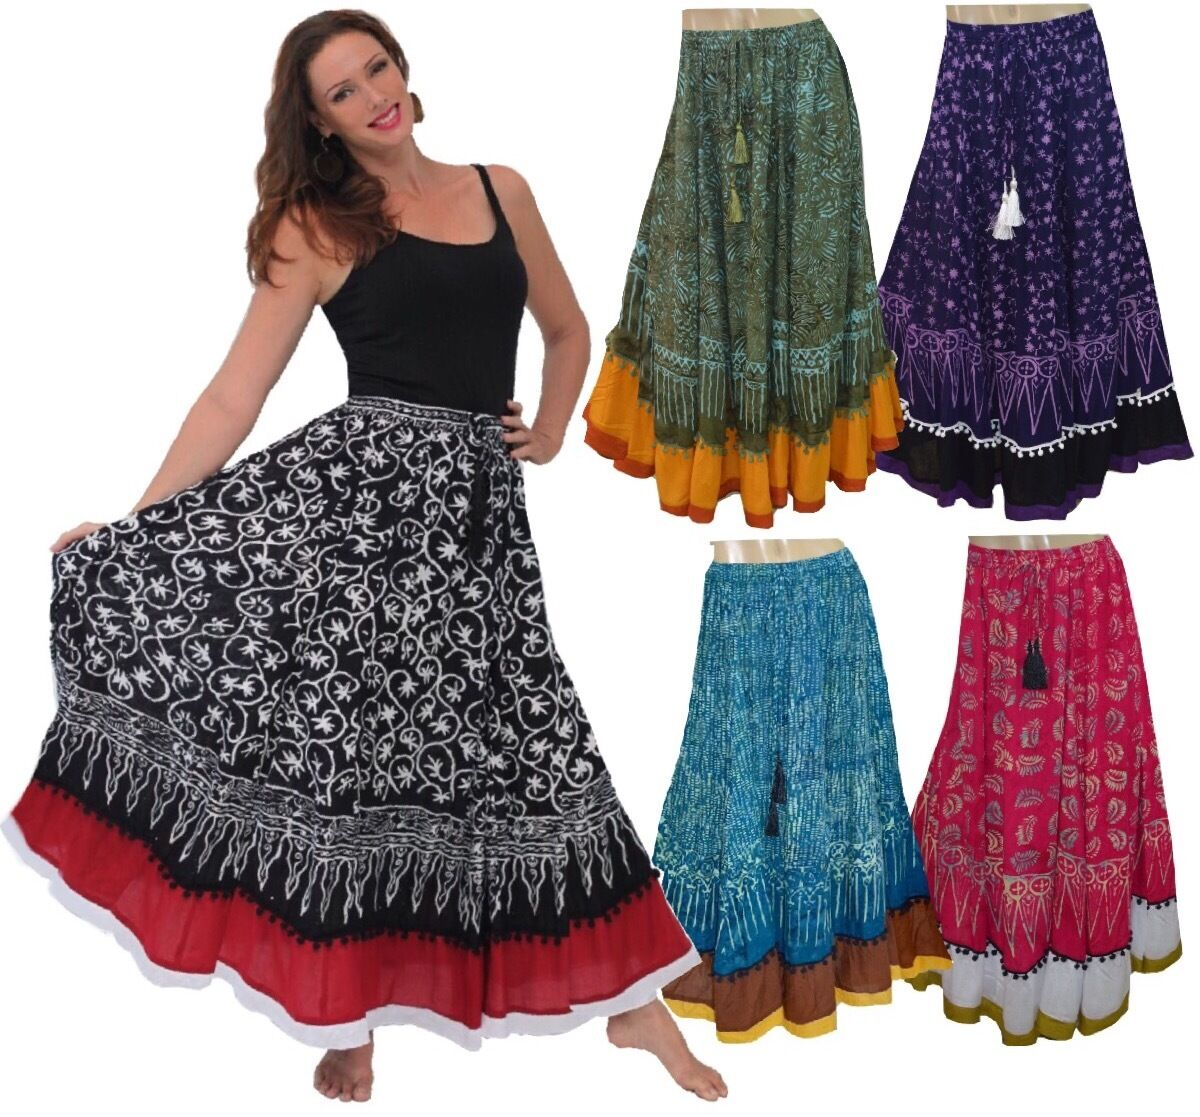 BOHO GYPSY MAXI SKIRT GAUZY BATIK POM POM ART LotusTraders MADE TO ORDER R907